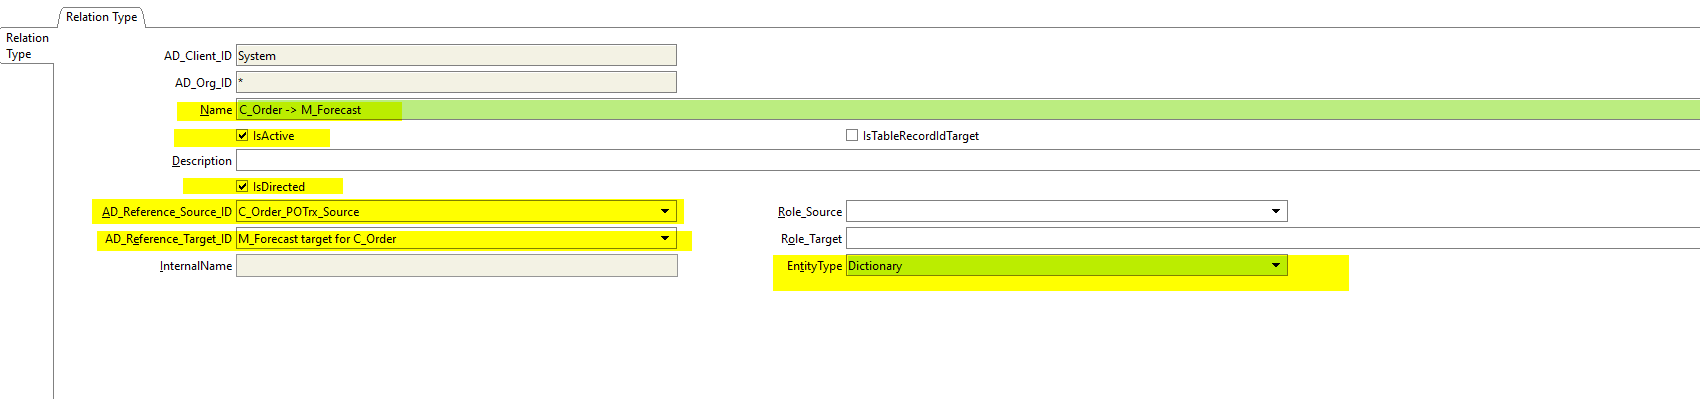 Relation type, 'IsTableRecordIdTarget' NOT checked